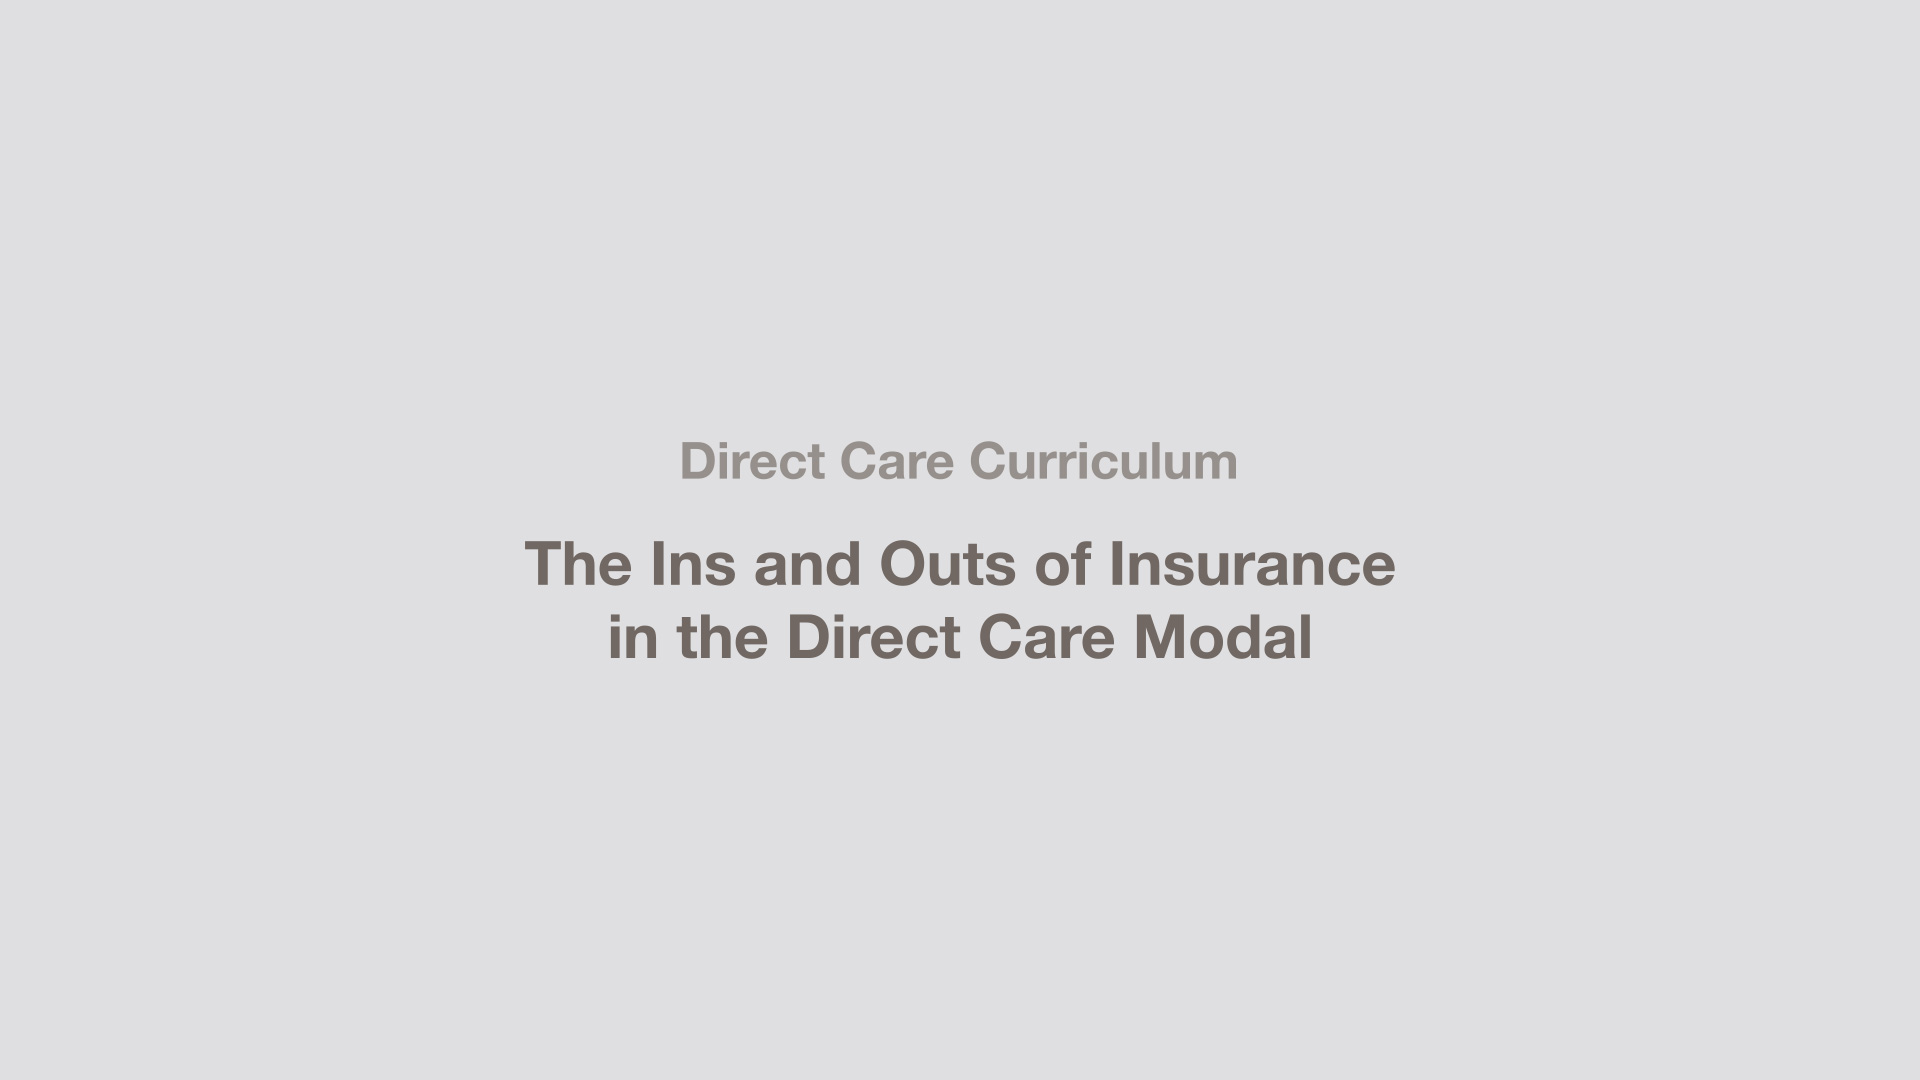 The Ins and Outs of Insurance in the Direct Care Model